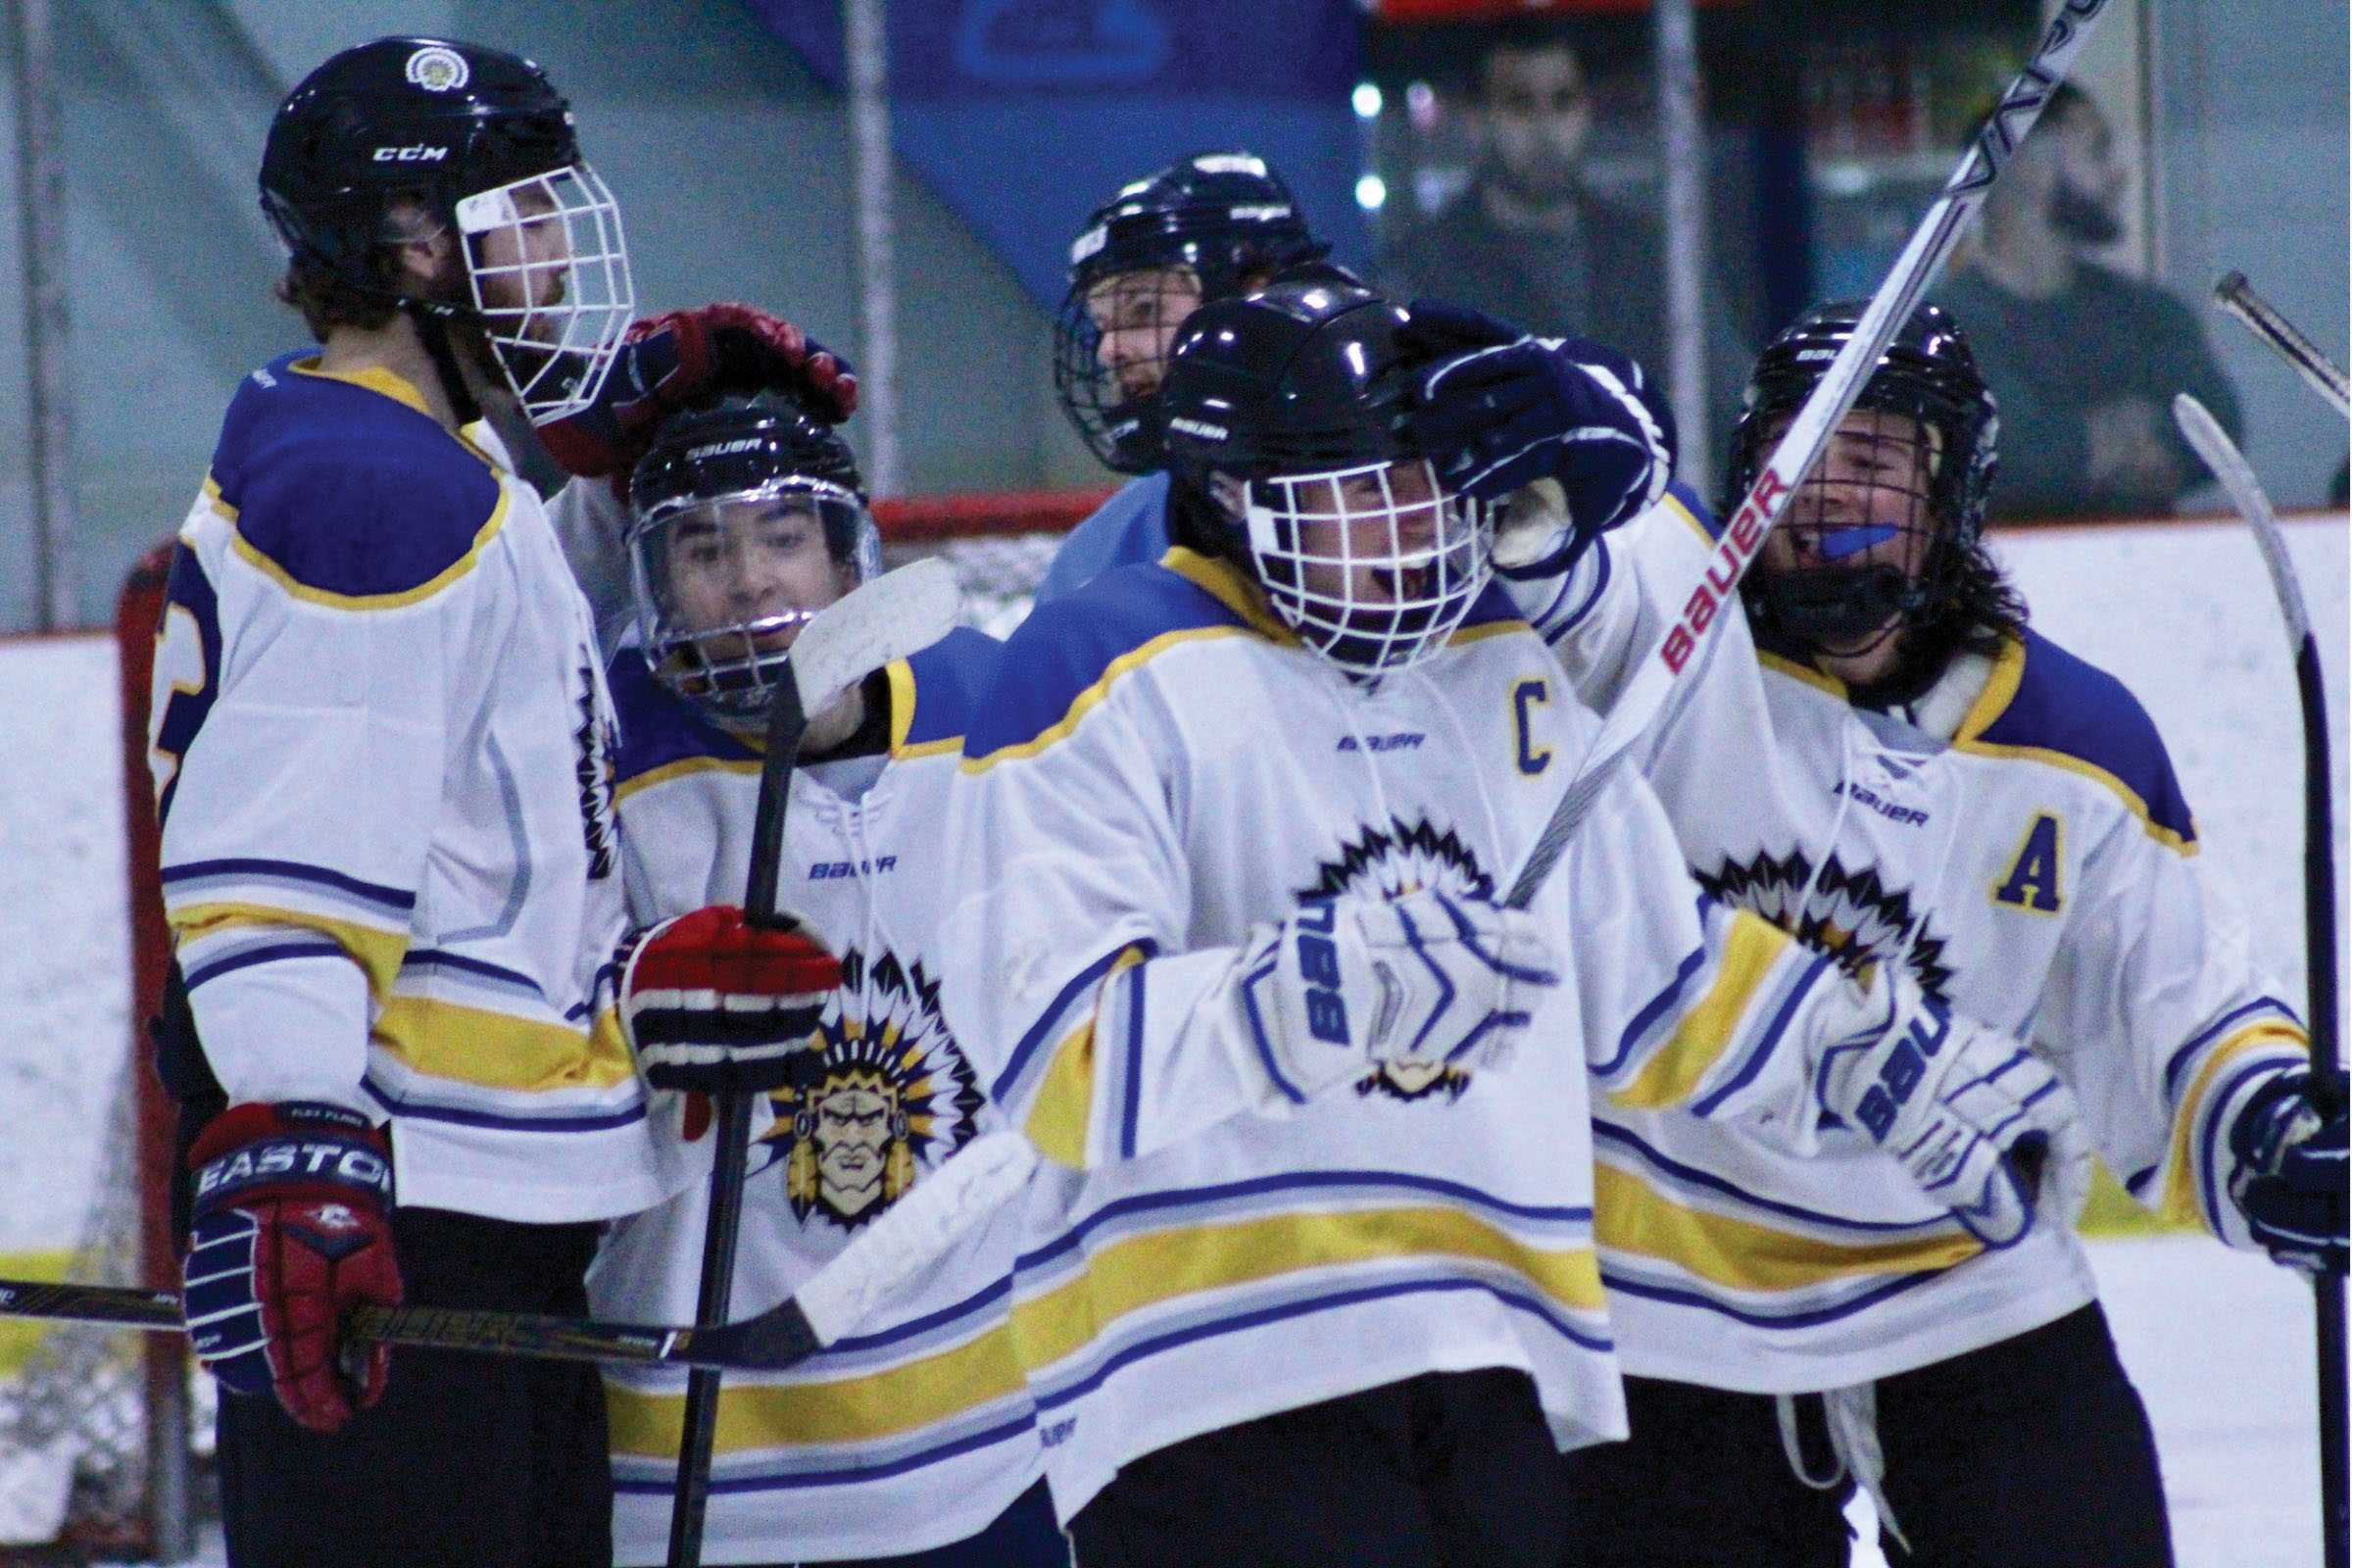 Brave Hockey leads club sports in search for affiliation